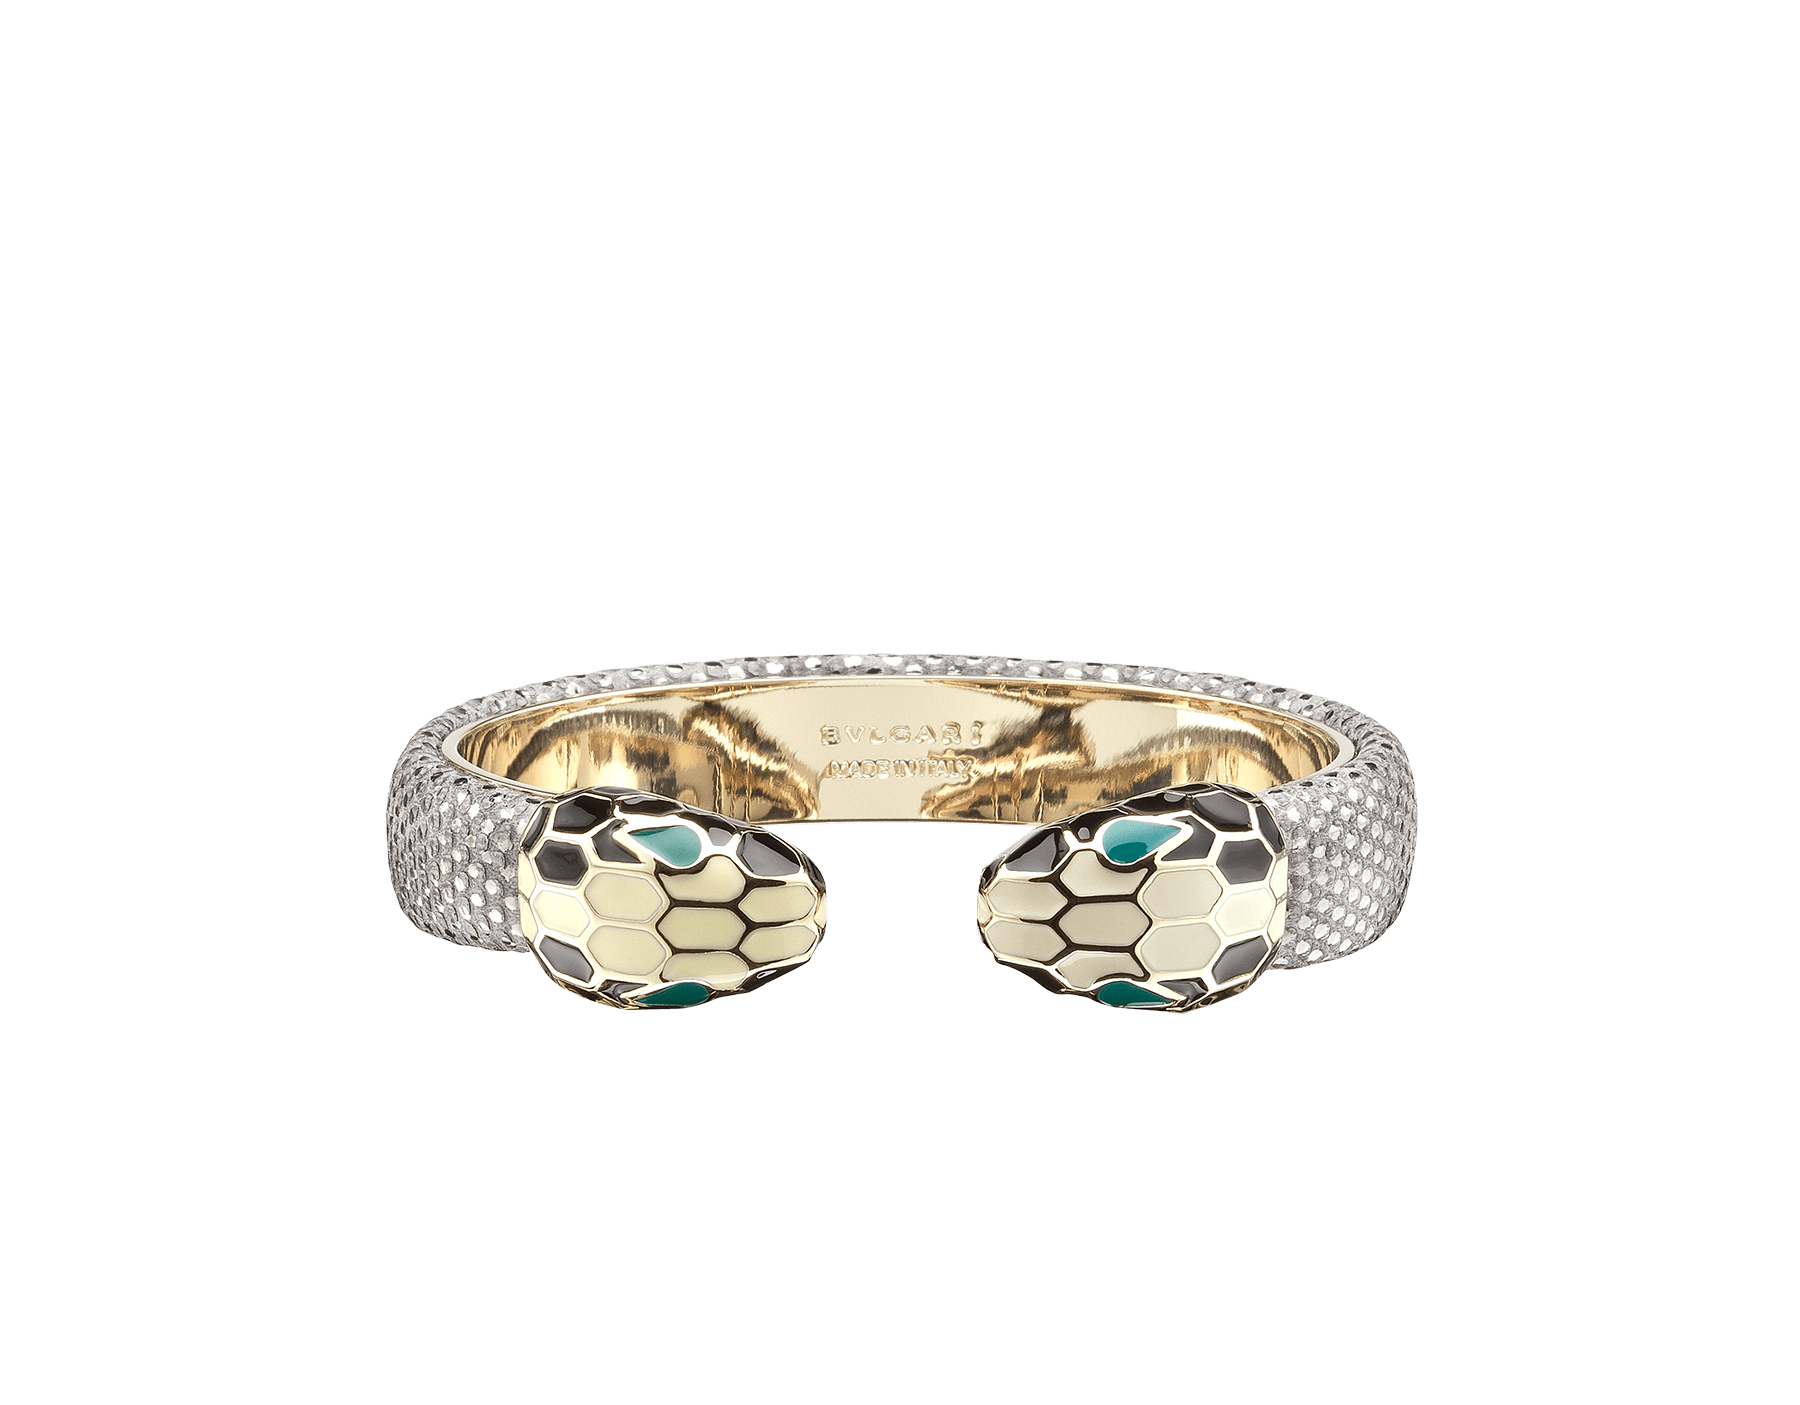 Bracelet in silver metallic karung skin with iconic contraire brass light gold plated Serpenti heads motif in black and white enamel, with green enamel eyes. SPContr-MK-S image 1